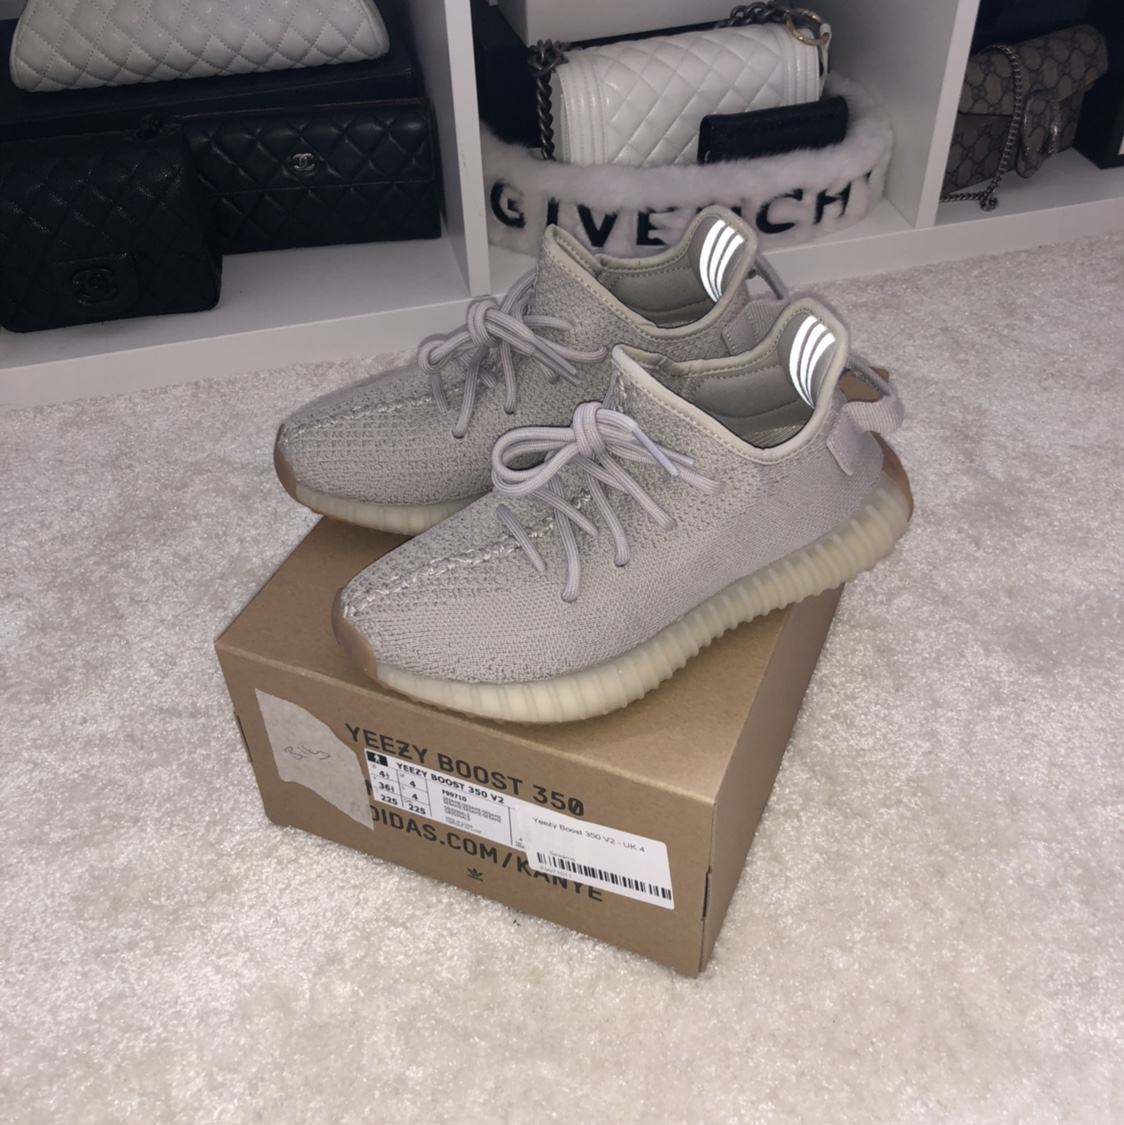 Yeezy boost SESAME 350 in 21532 Malm